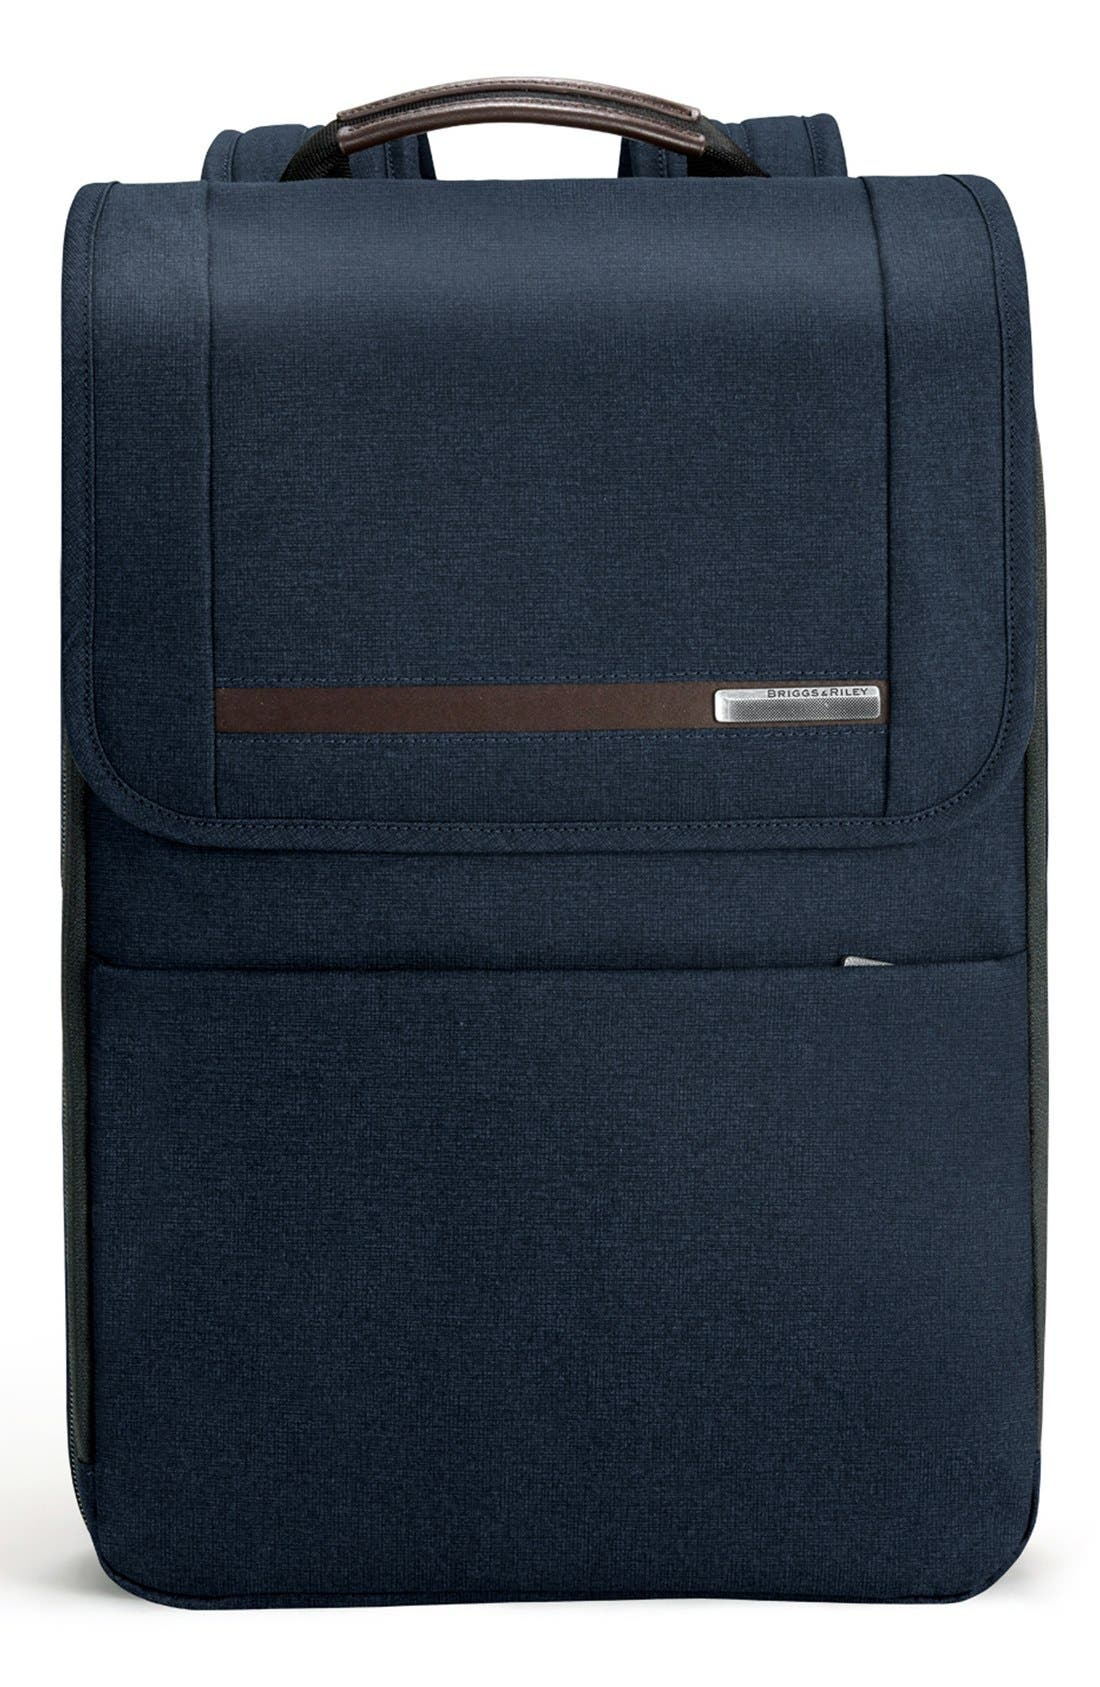 Kinzie Street Expandable Backpack,                             Main thumbnail 1, color,                             Navy Blue